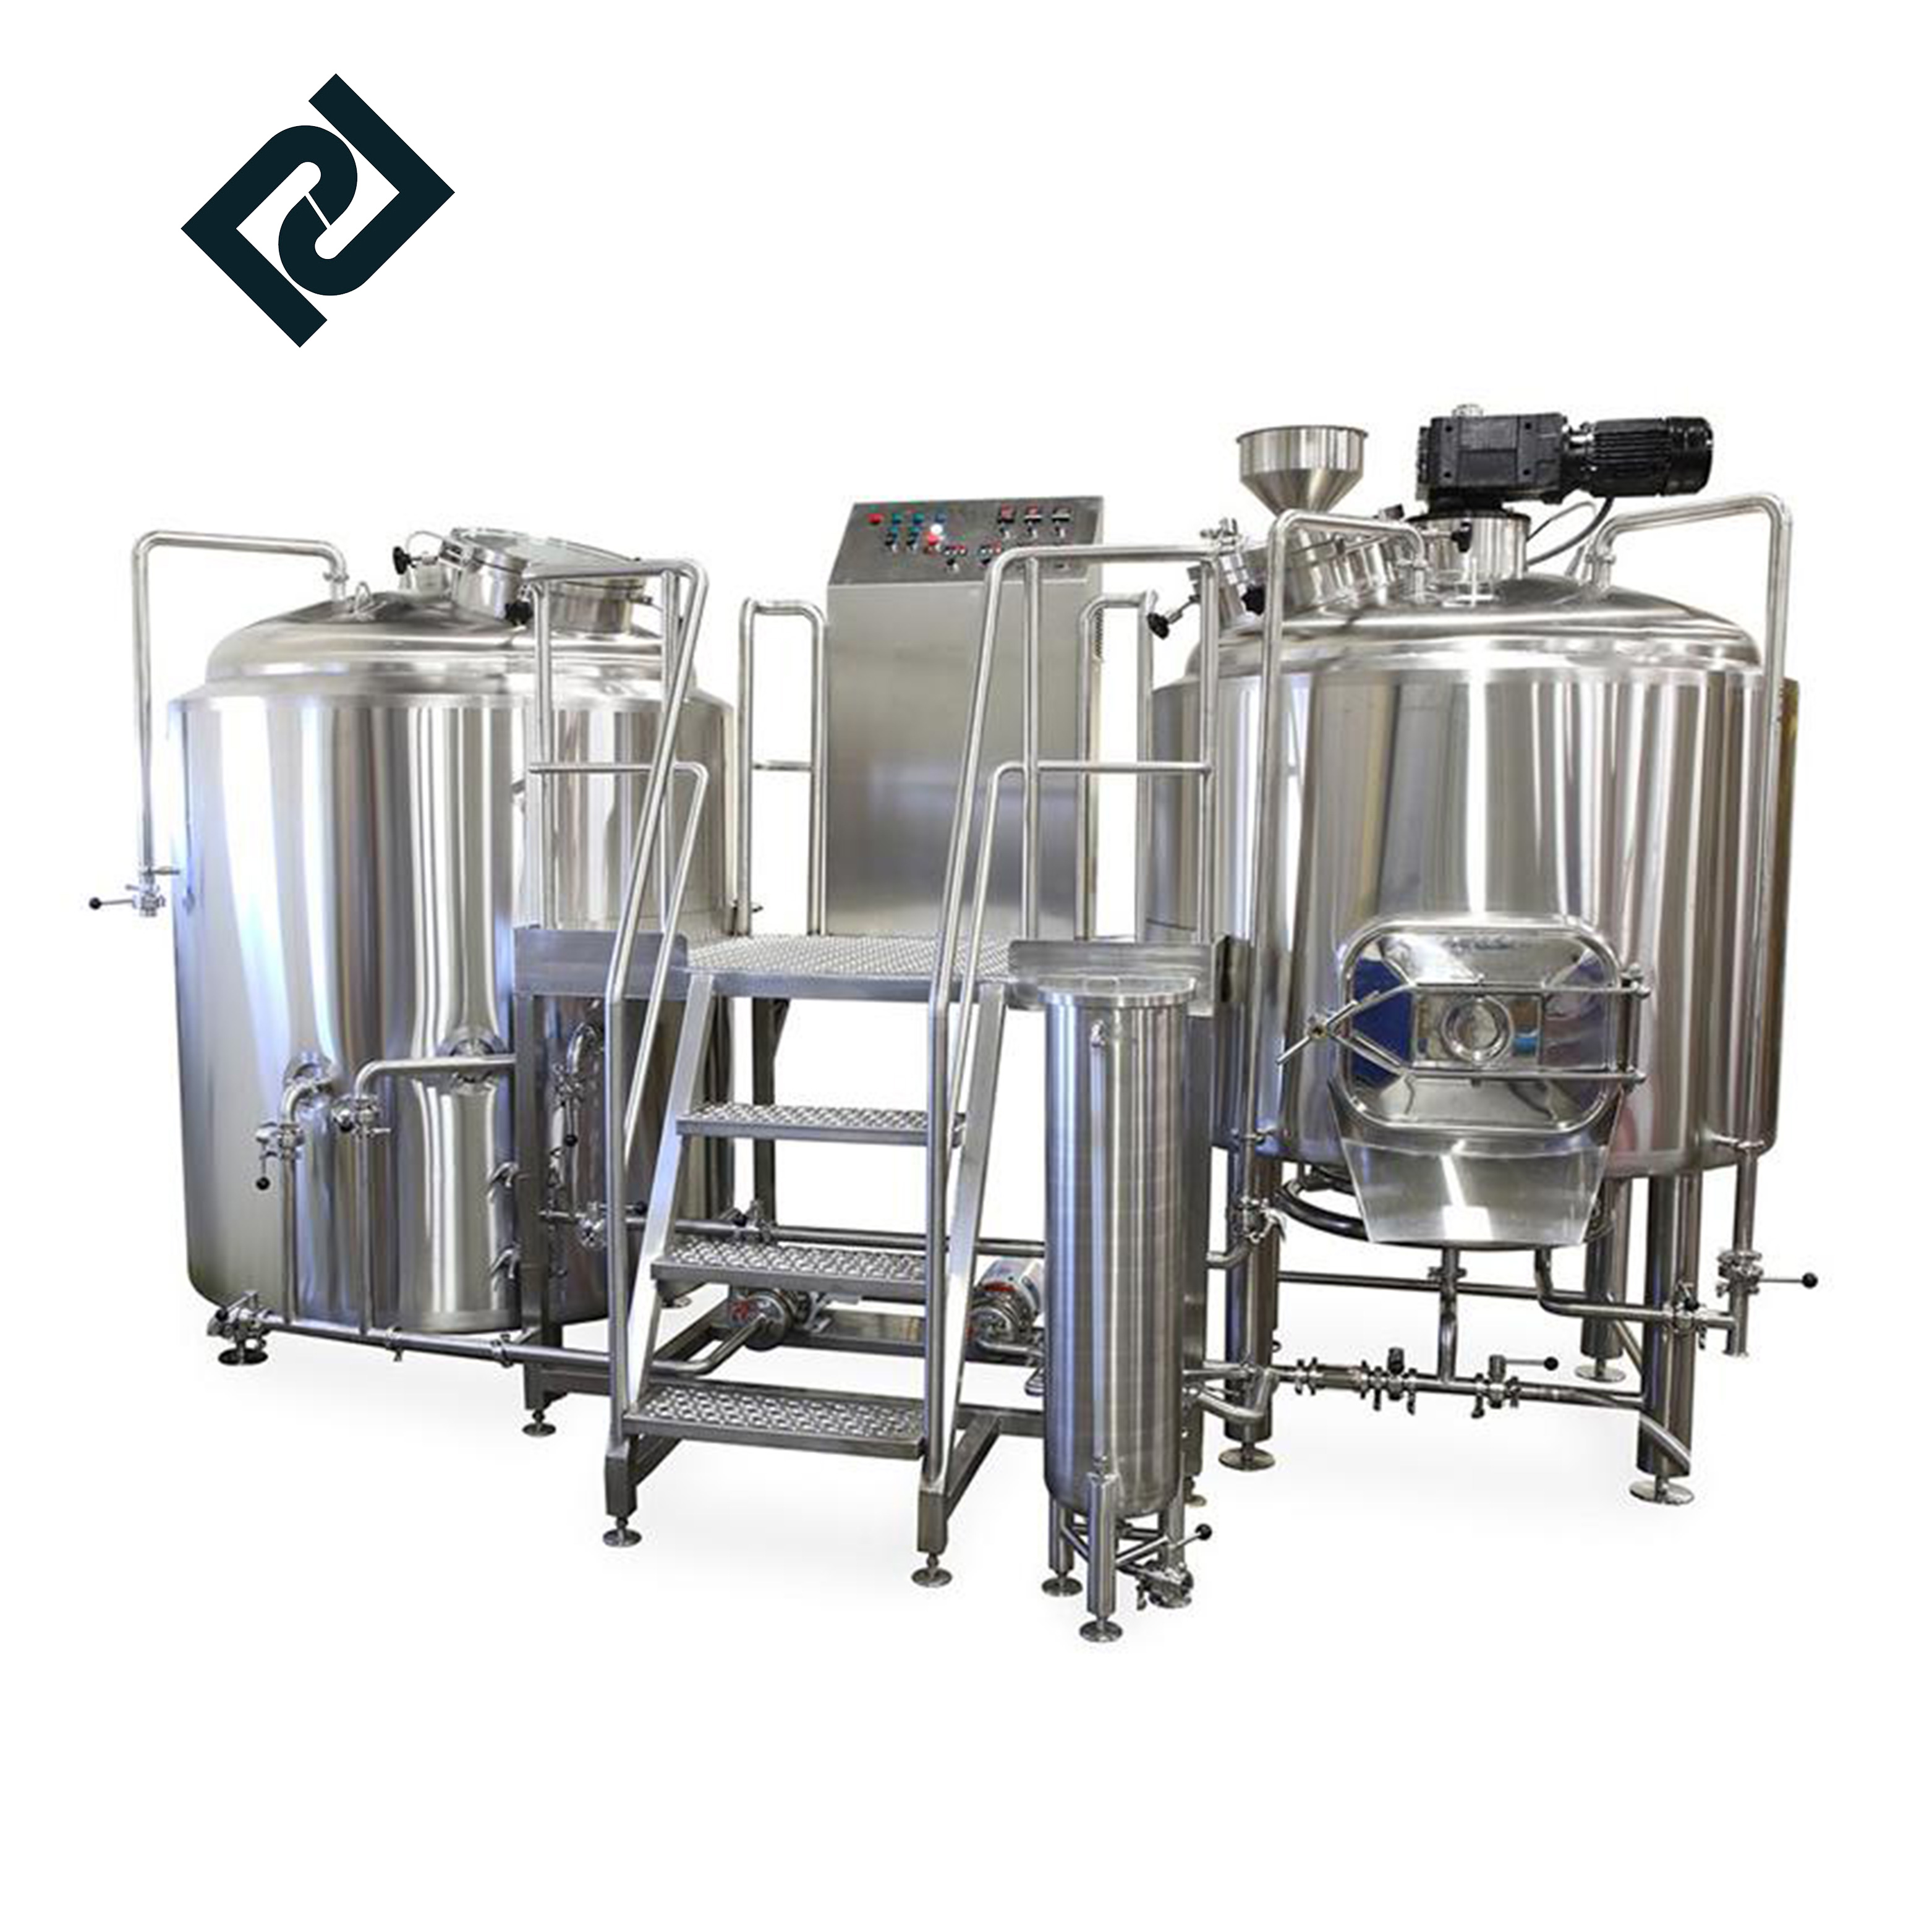 Factory Free sample 200l Beer Brewing Equipment Home - 10bbl beer brewing equipment beer brewing system craft beer production equipment – Pijiang